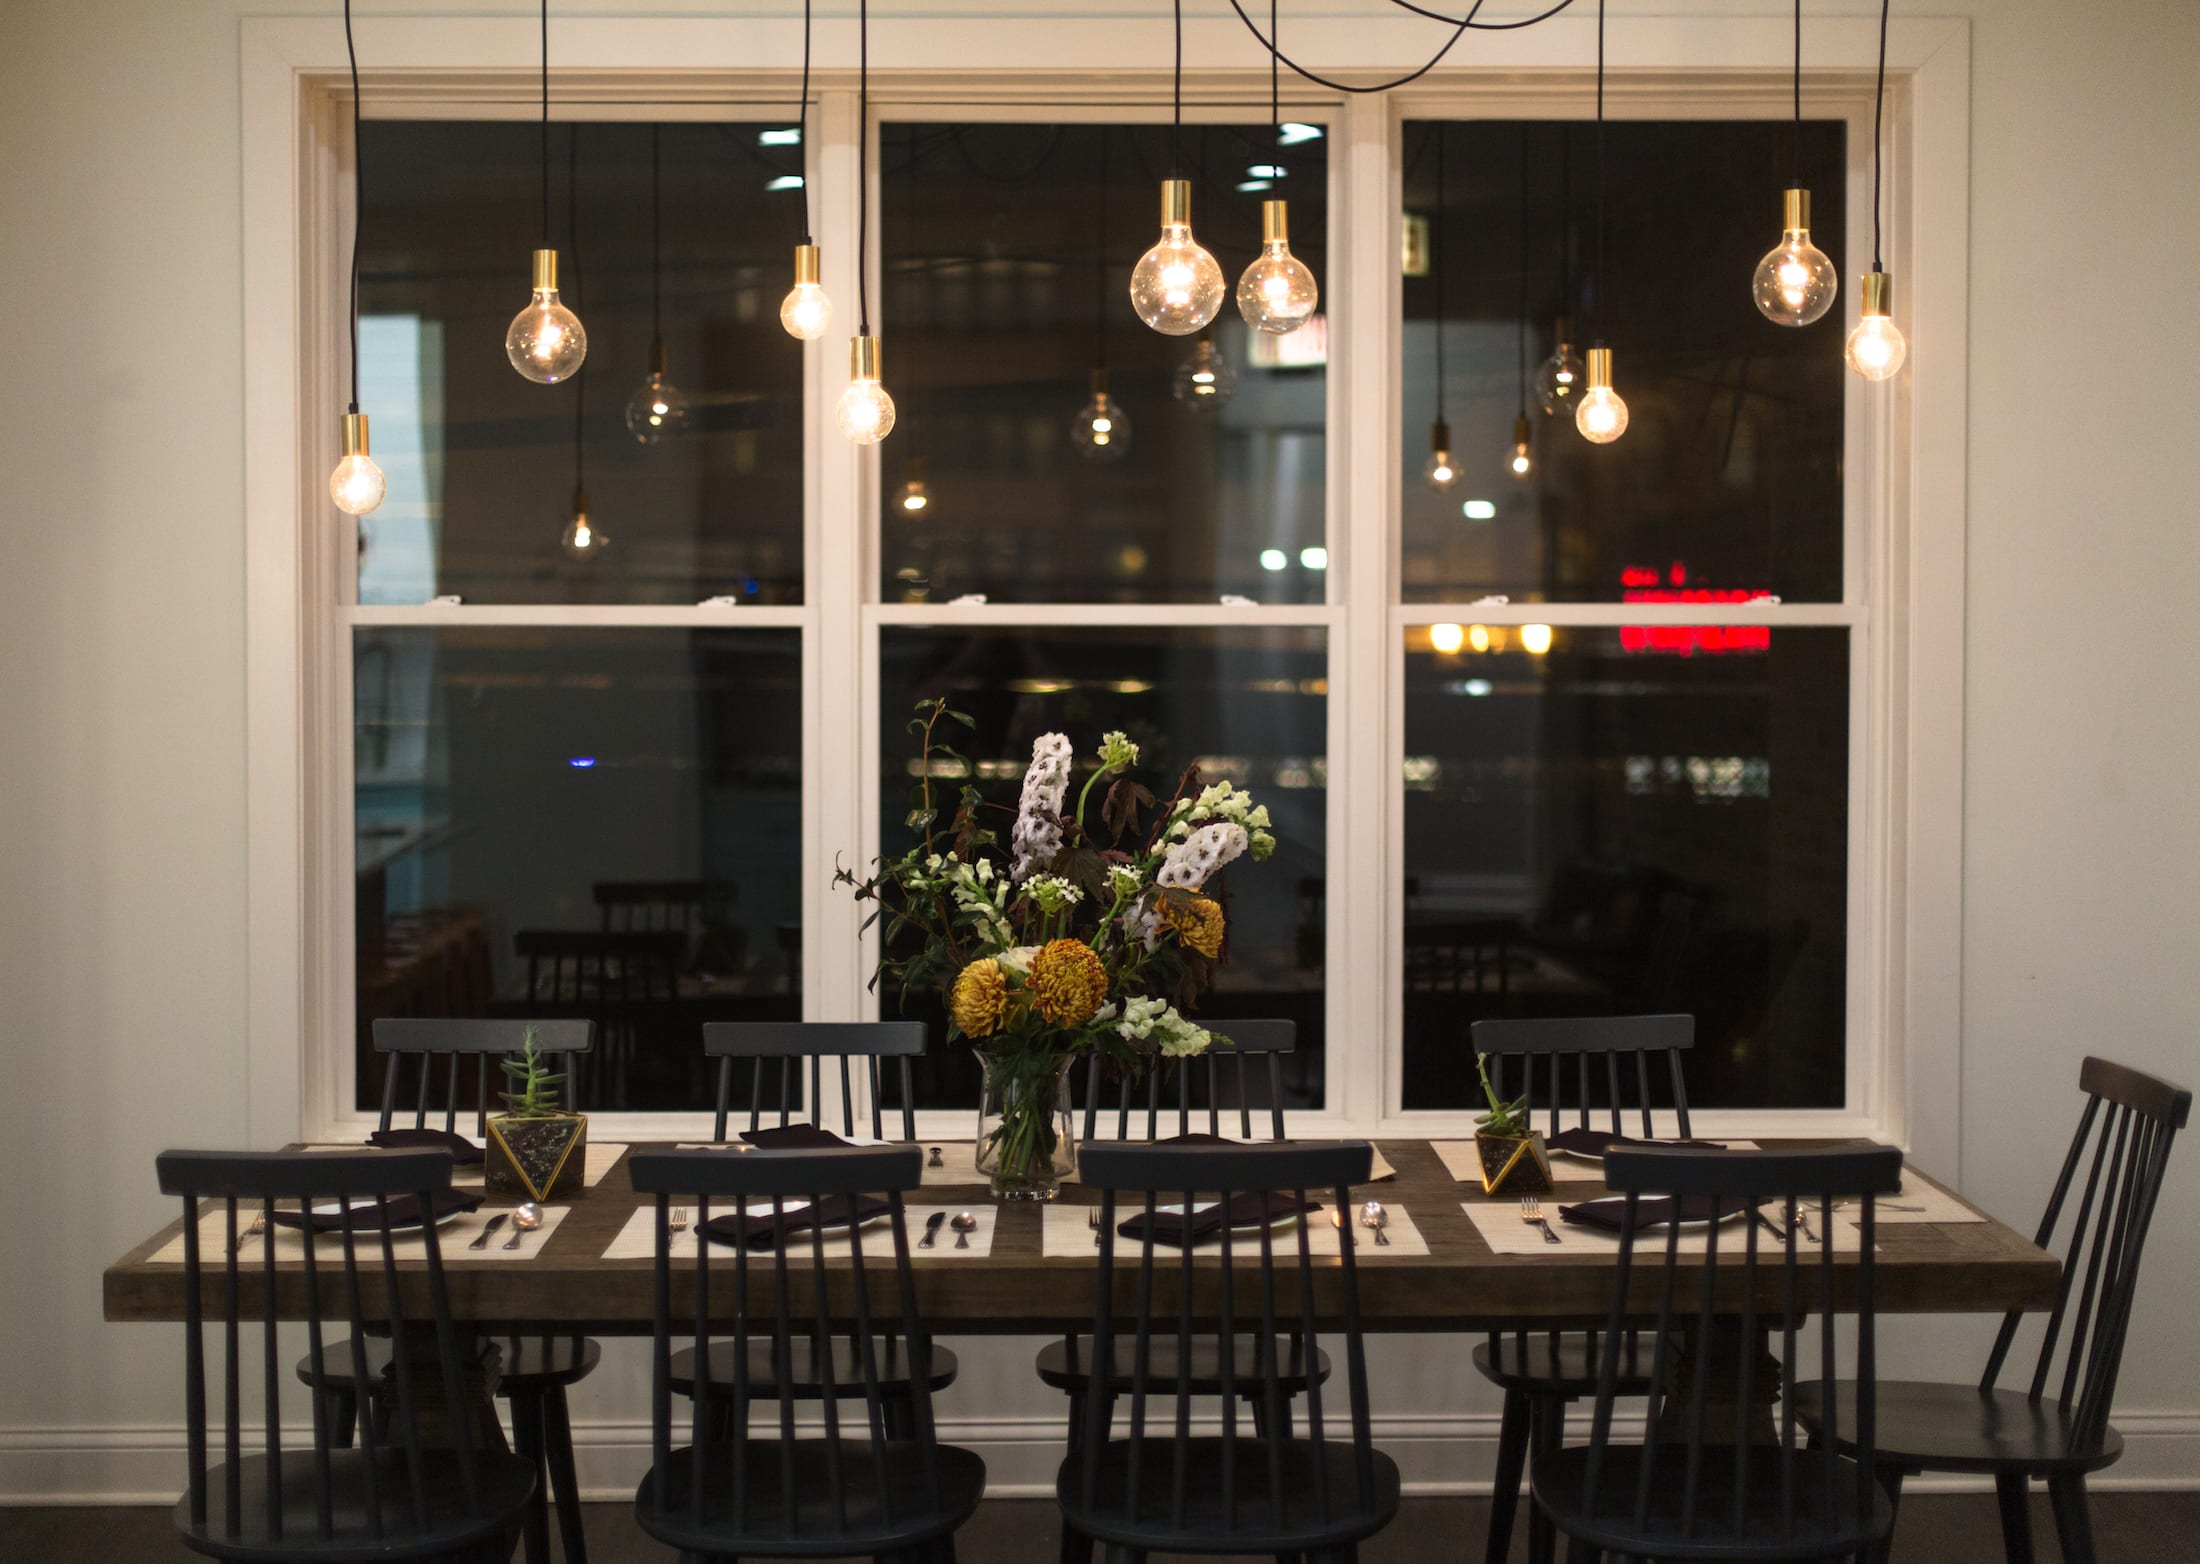 Events at the Wicker Park Inn